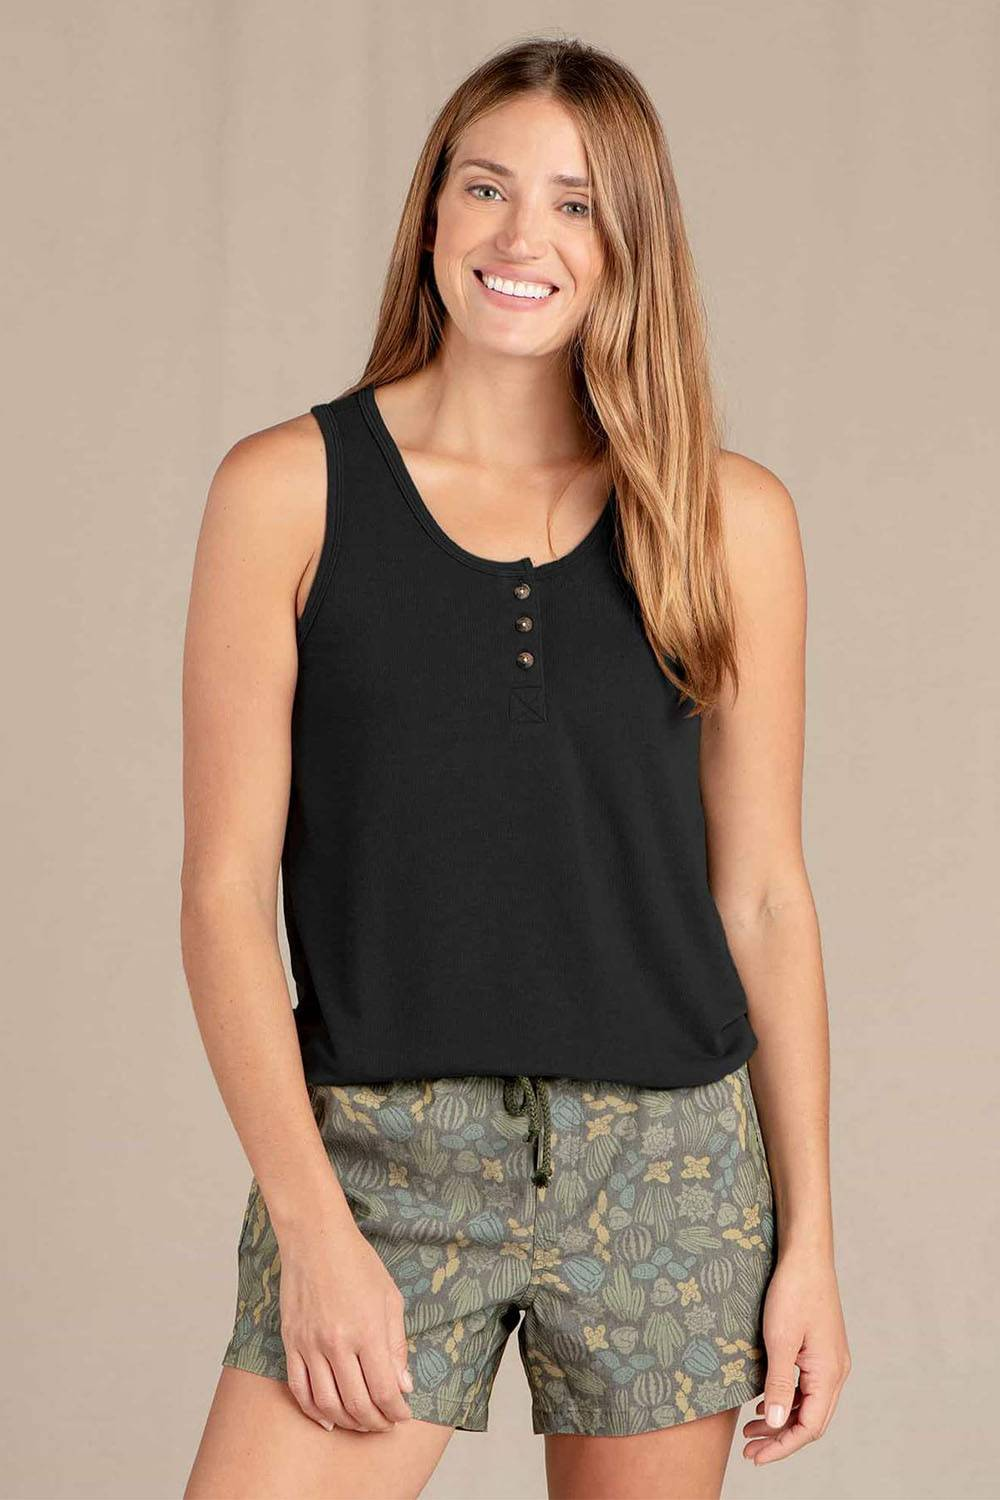 toadandco sustainable affordable hemp tank top